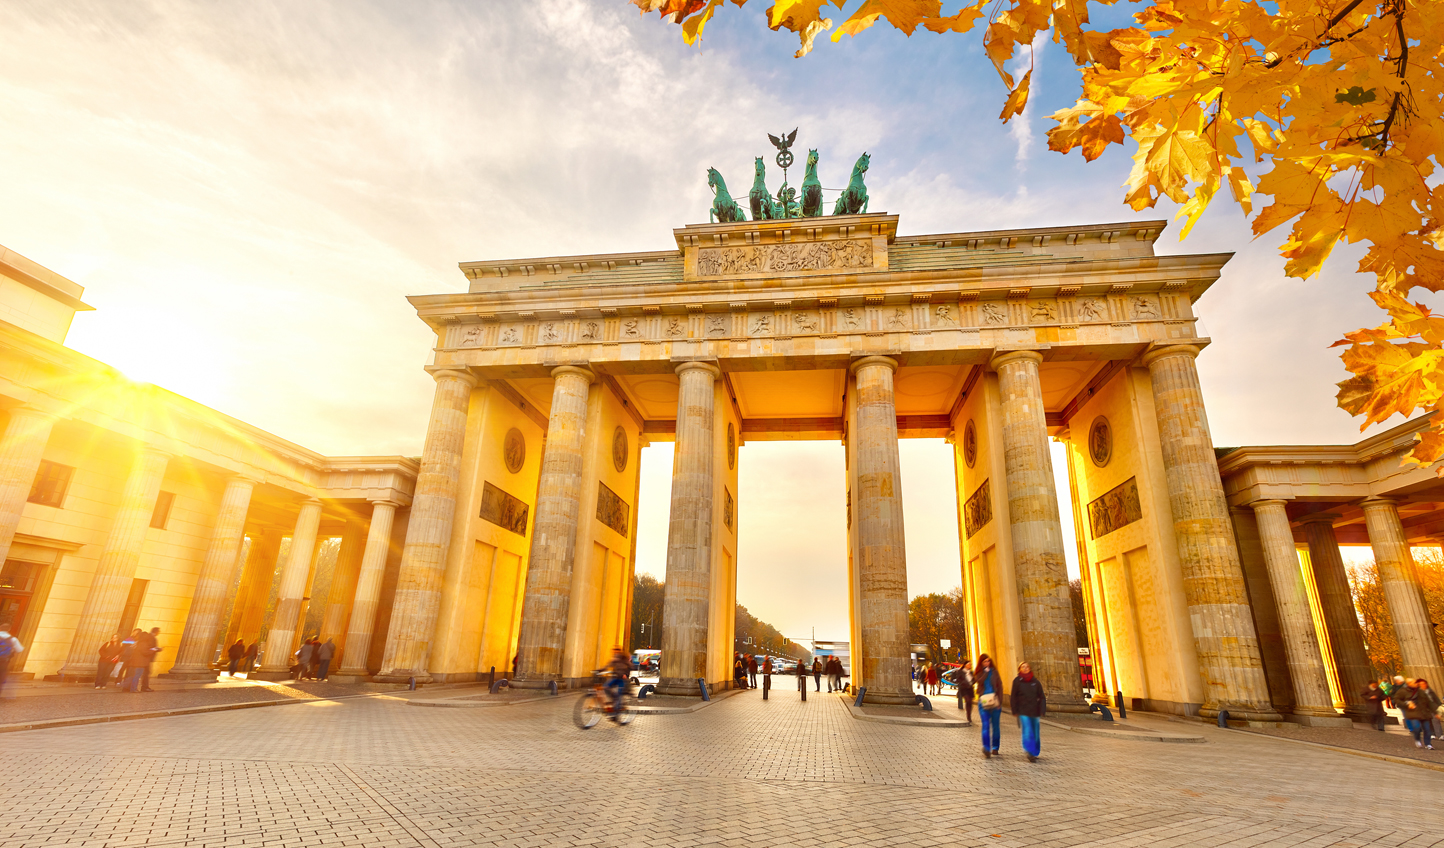 Enjoy your final dinner in Berlin in the shadow of one of its greatest monuments